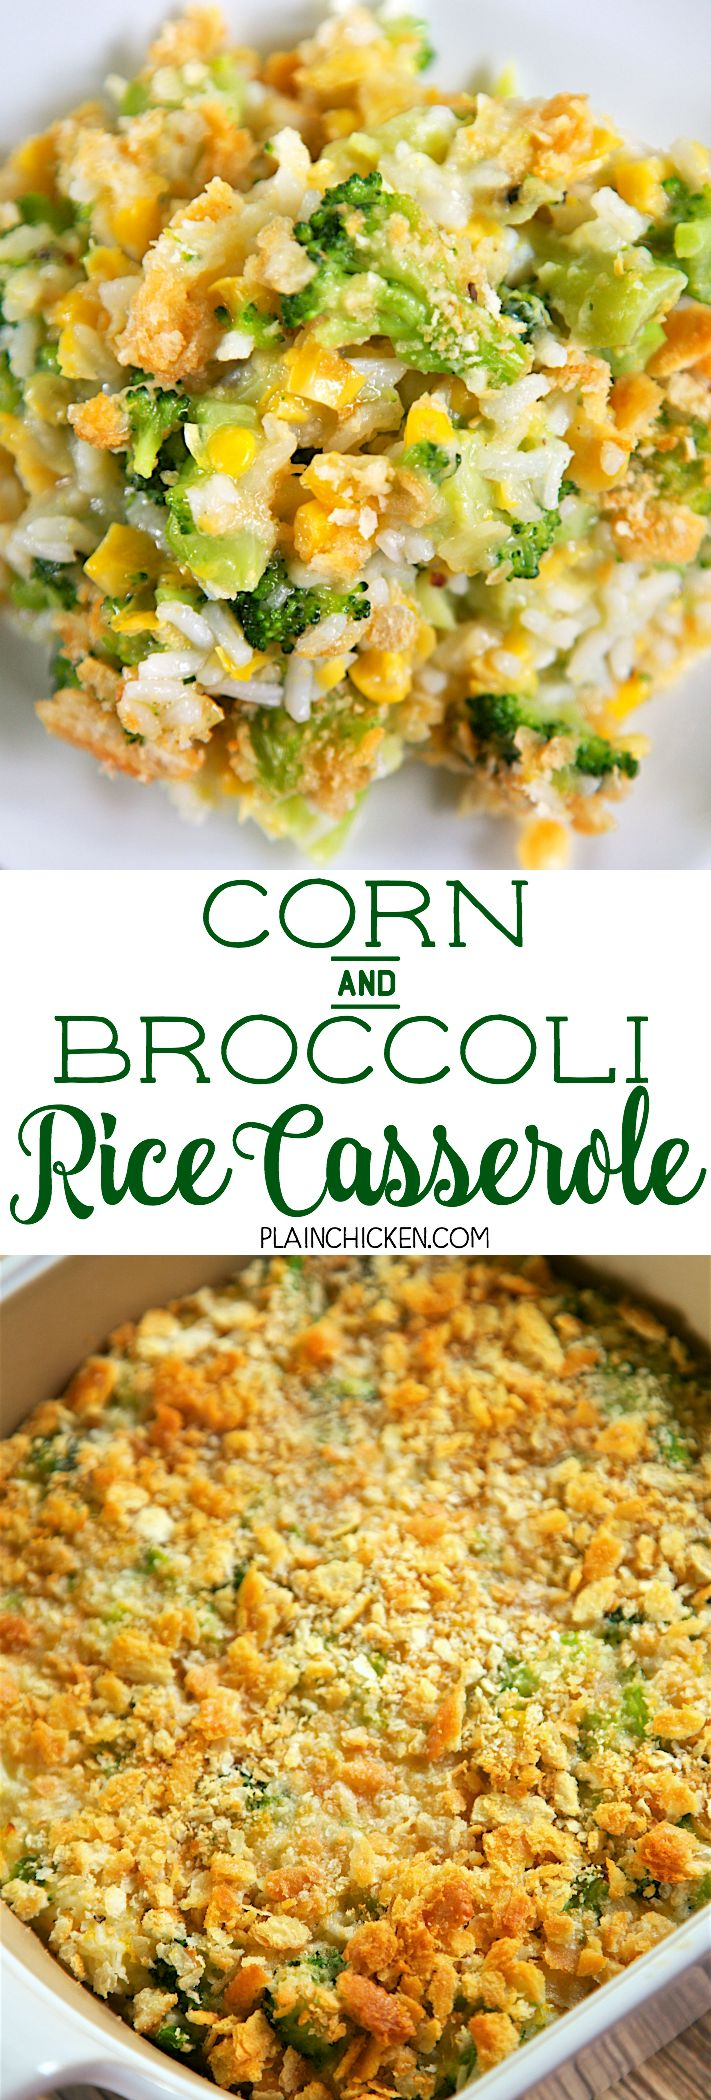 1-1/2 cups cooked rice 1 (10-oz) package frozen chopped broccoli, thawed and drained 1 (14.75-oz) can creamed corn 1 egg, beaten 1/2 tsp onion powder 1/4 tsp garlic powder 1/2 cup crushed Ritz crackers 1/4 cup butter, melted  350 for 25-30 min